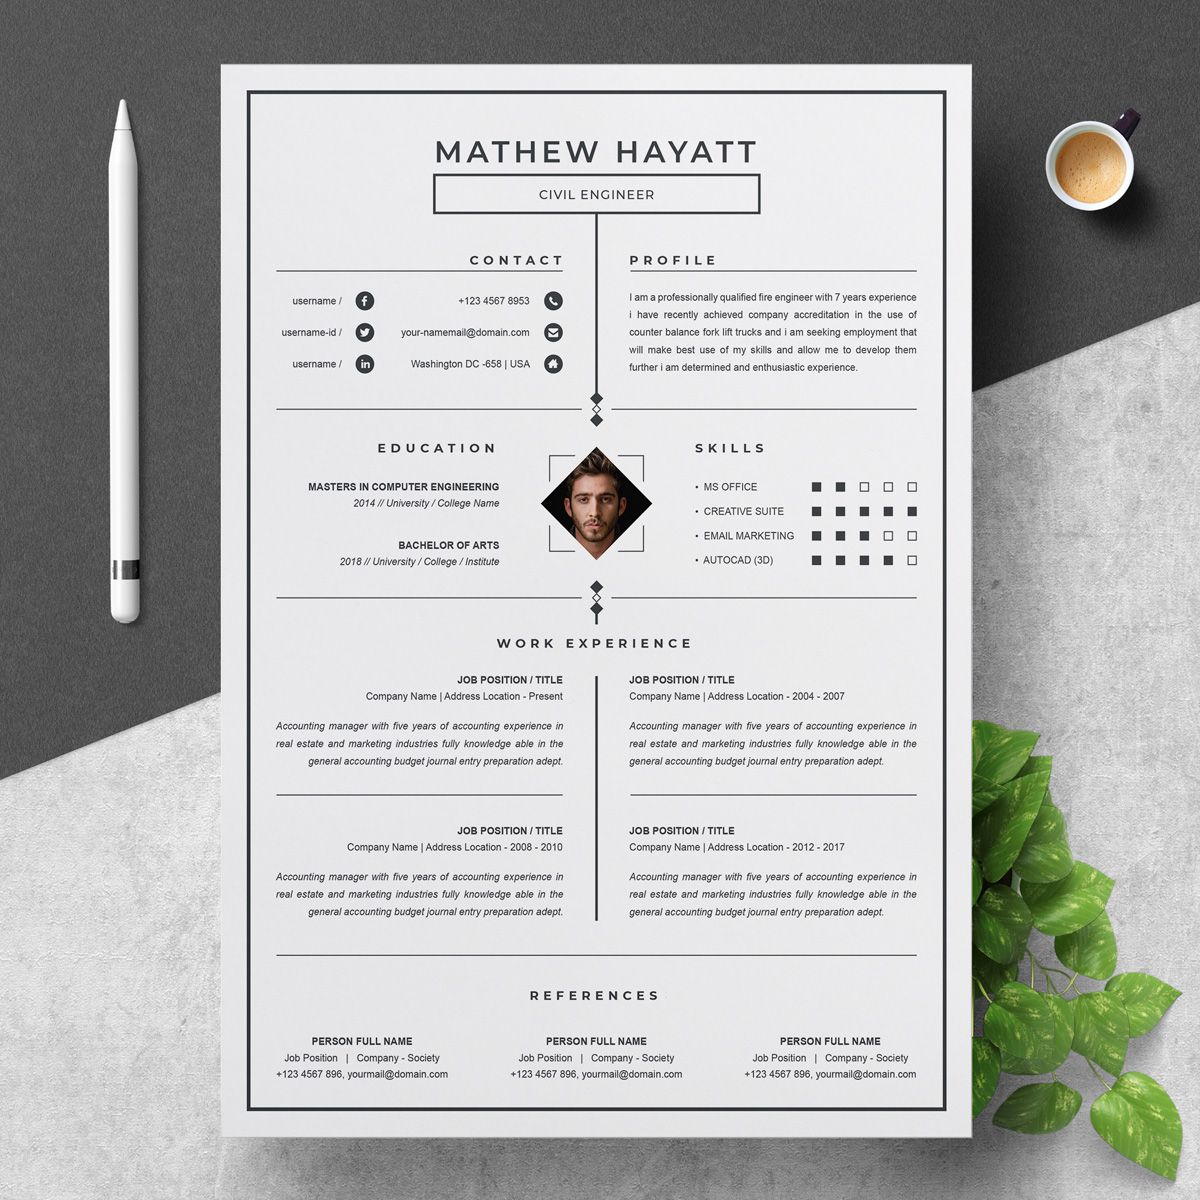 Mathew Resume Template 75556 One page resume template